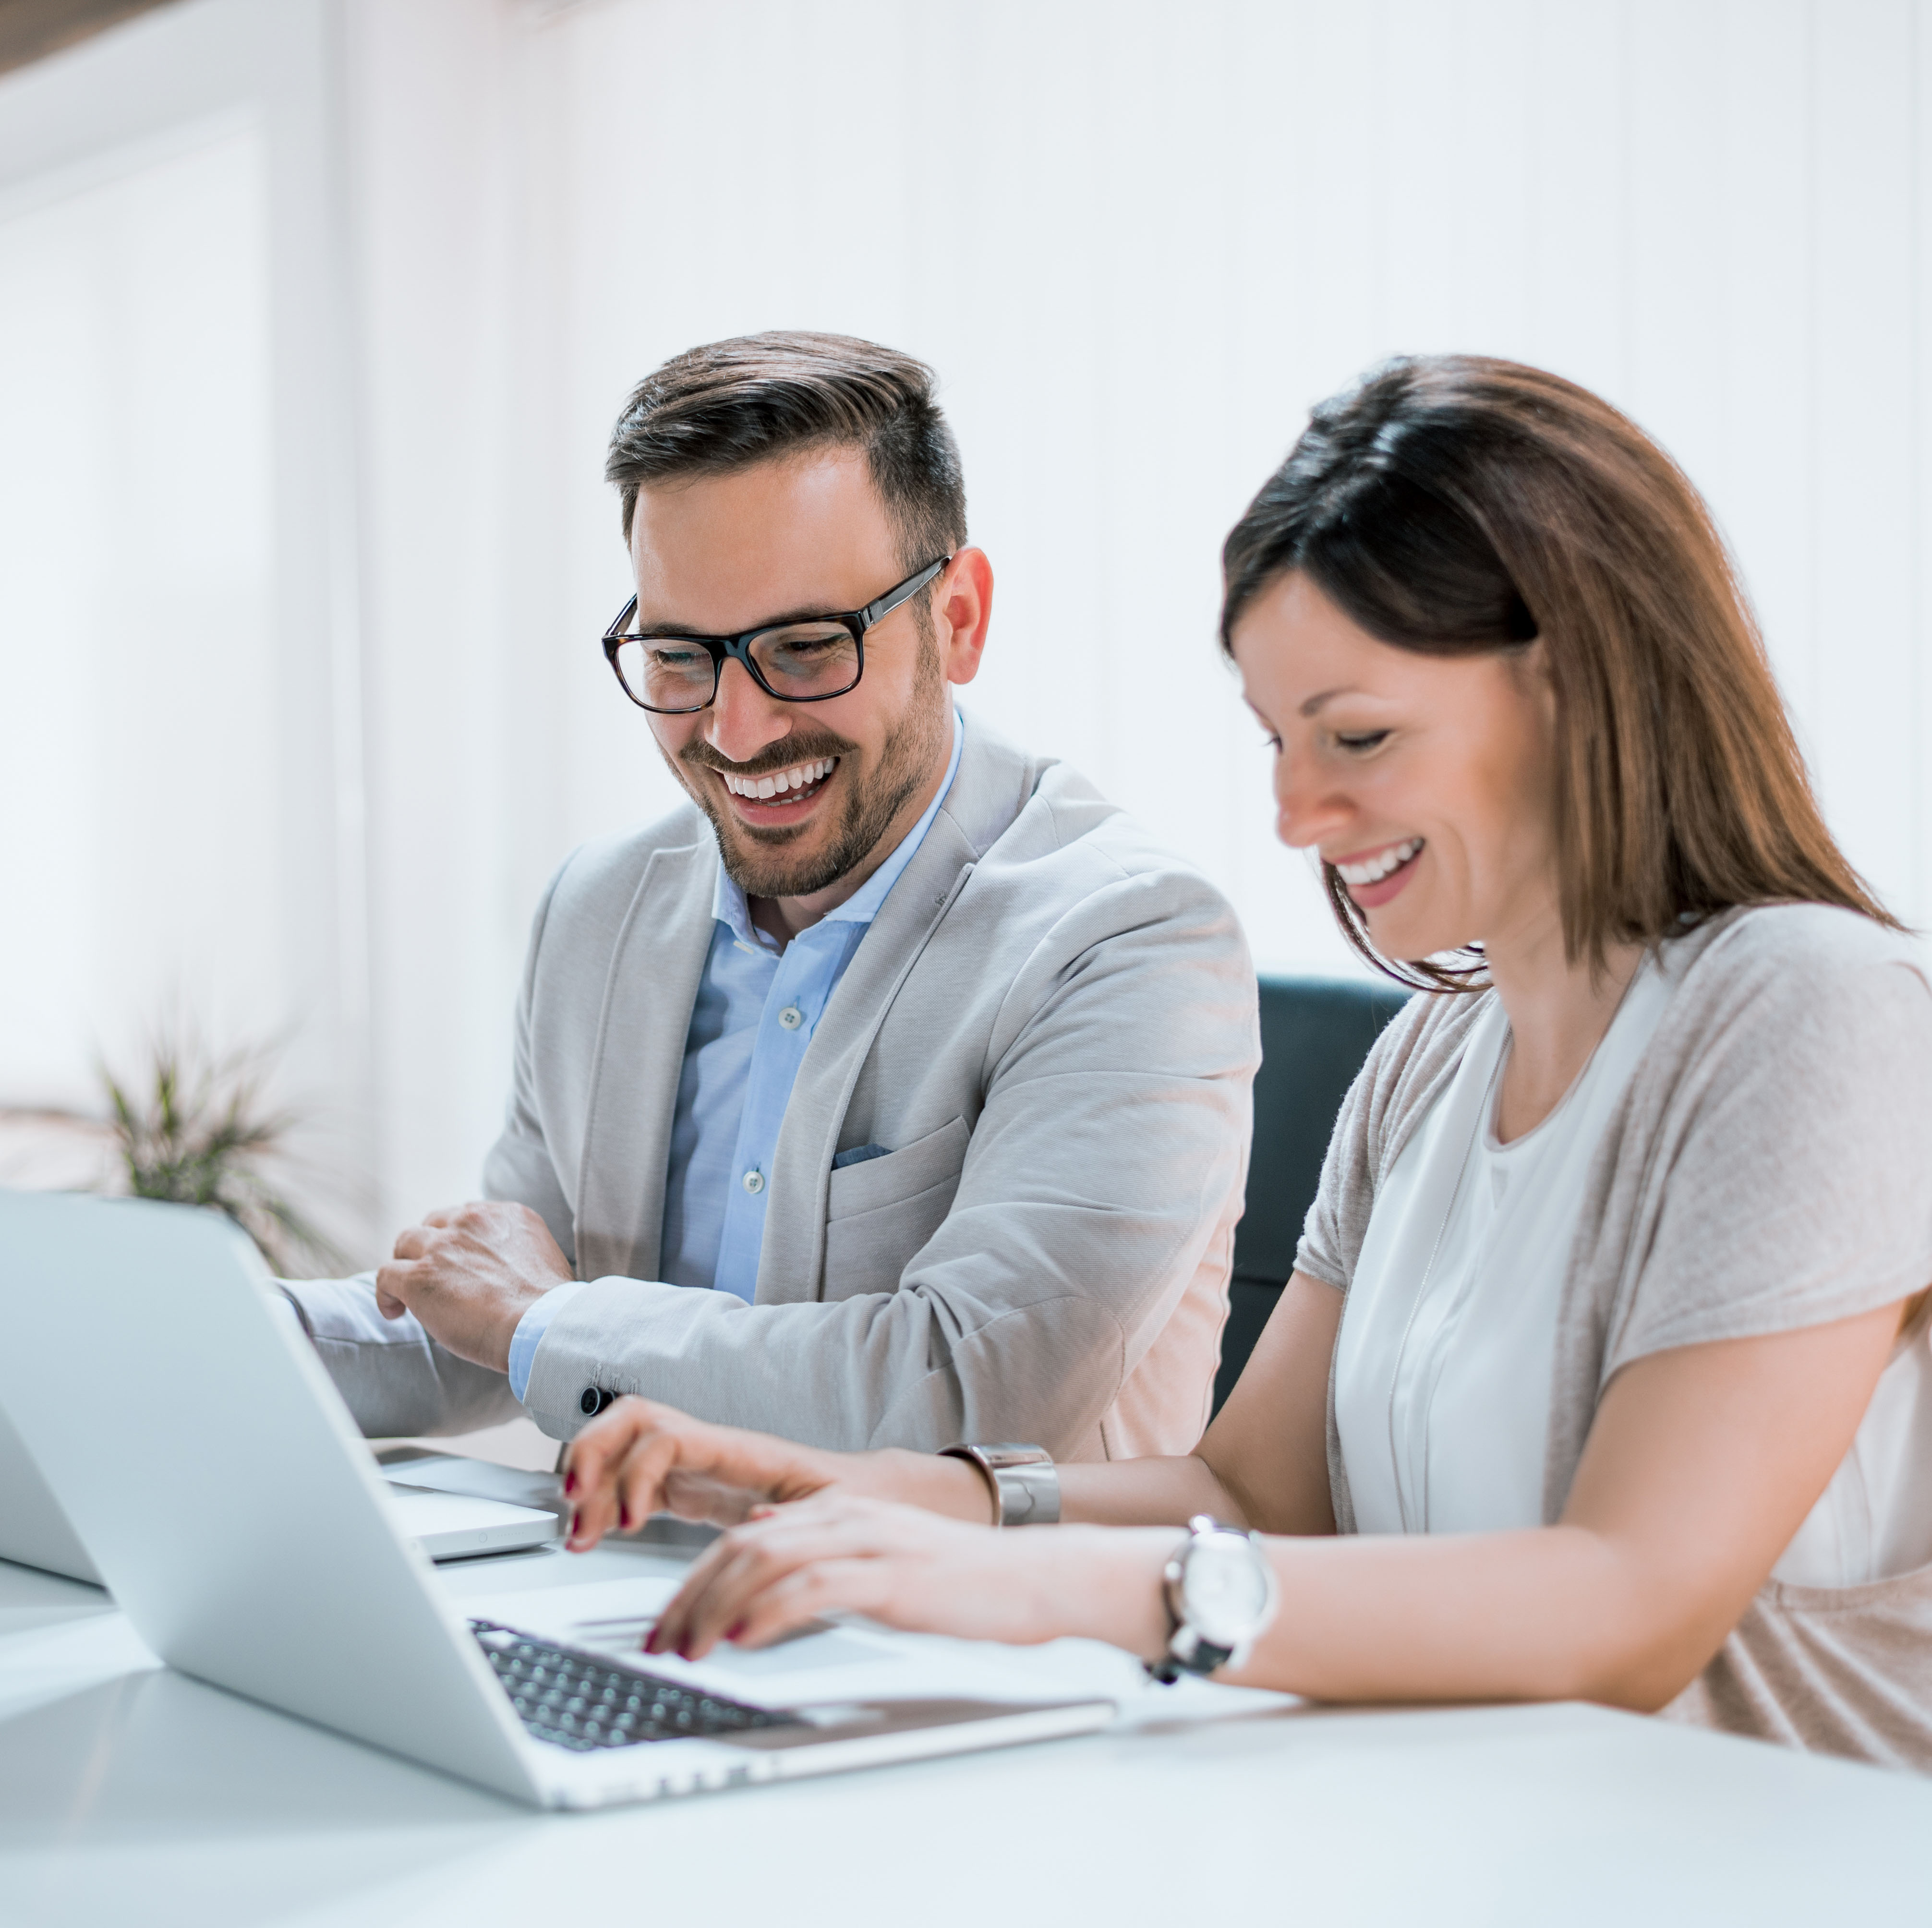 Two people smiling while working on their laptops